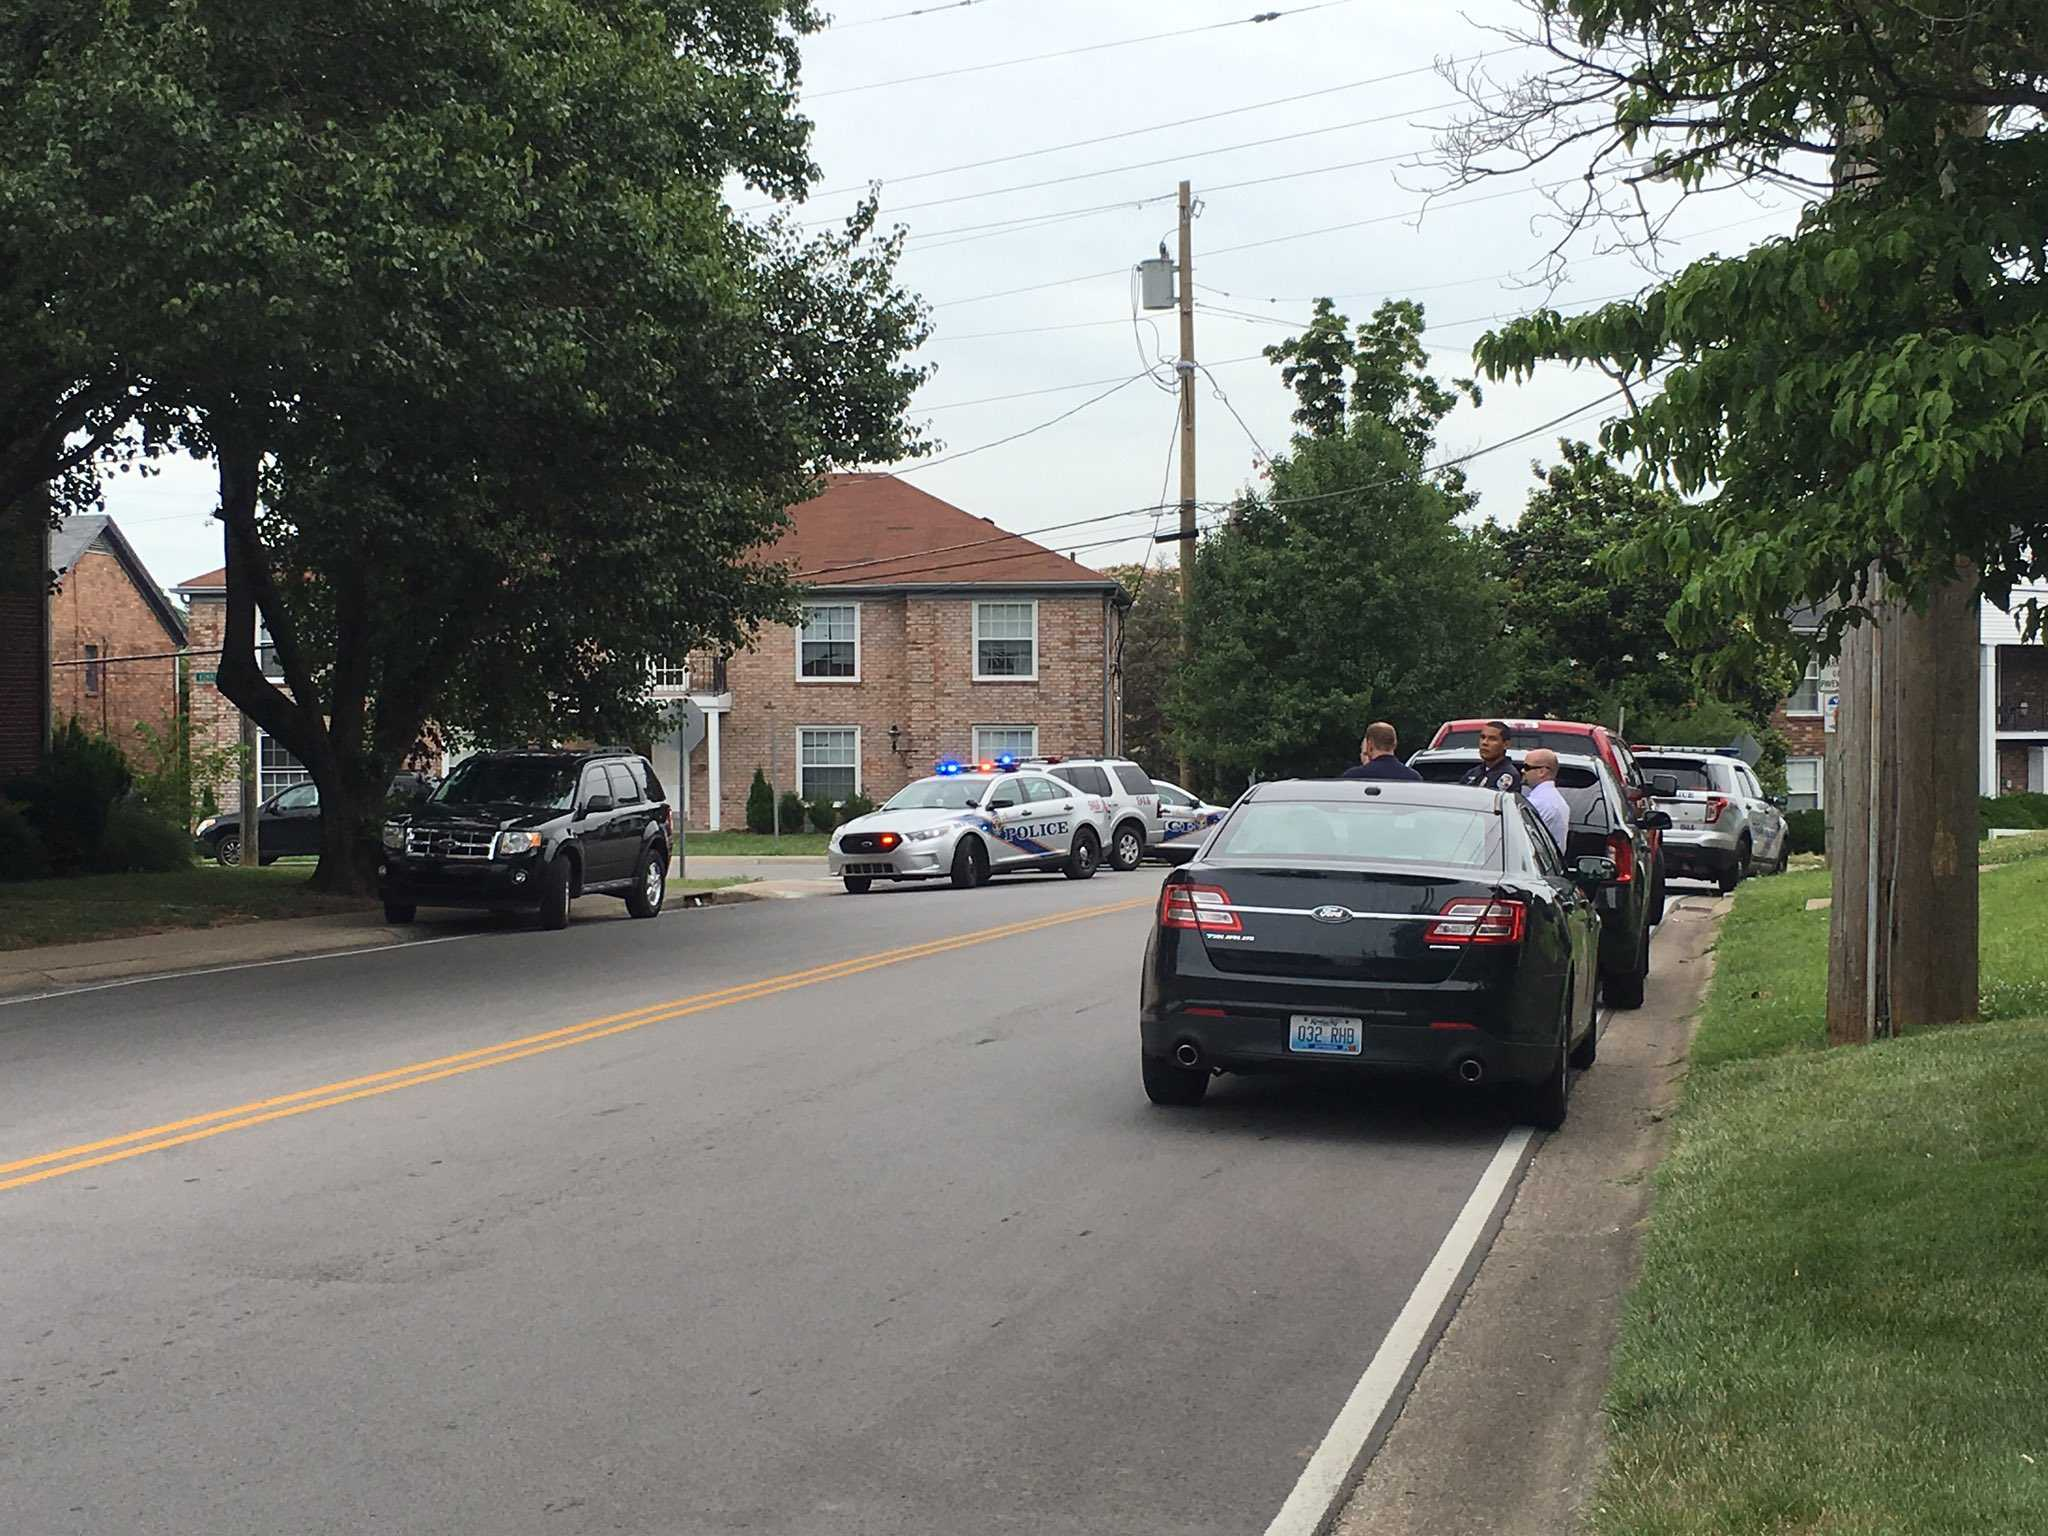 Suspect in custody after late night shooting of LMPD officer